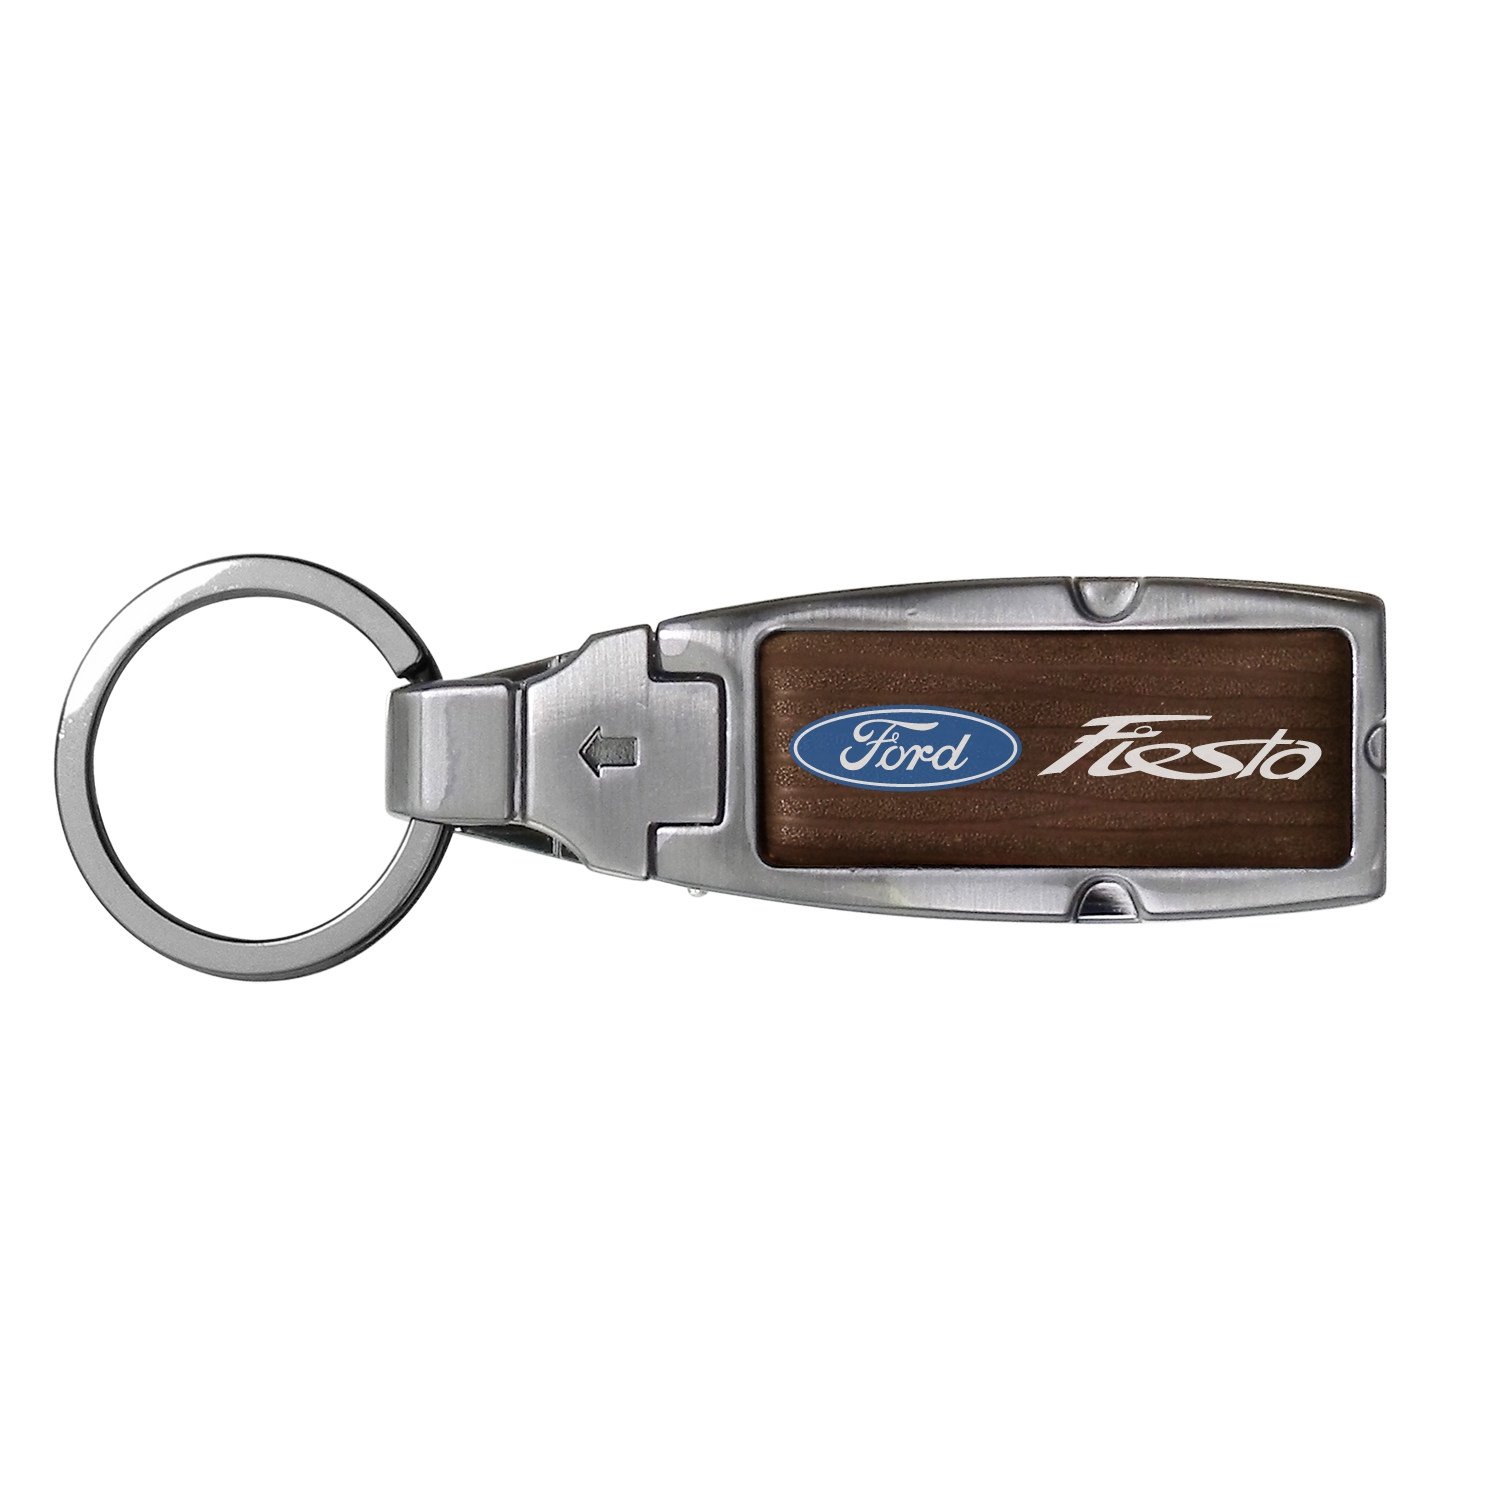 Ford Fiesta in Color Brown Leather Detachable Ring Black Metal Key Chain